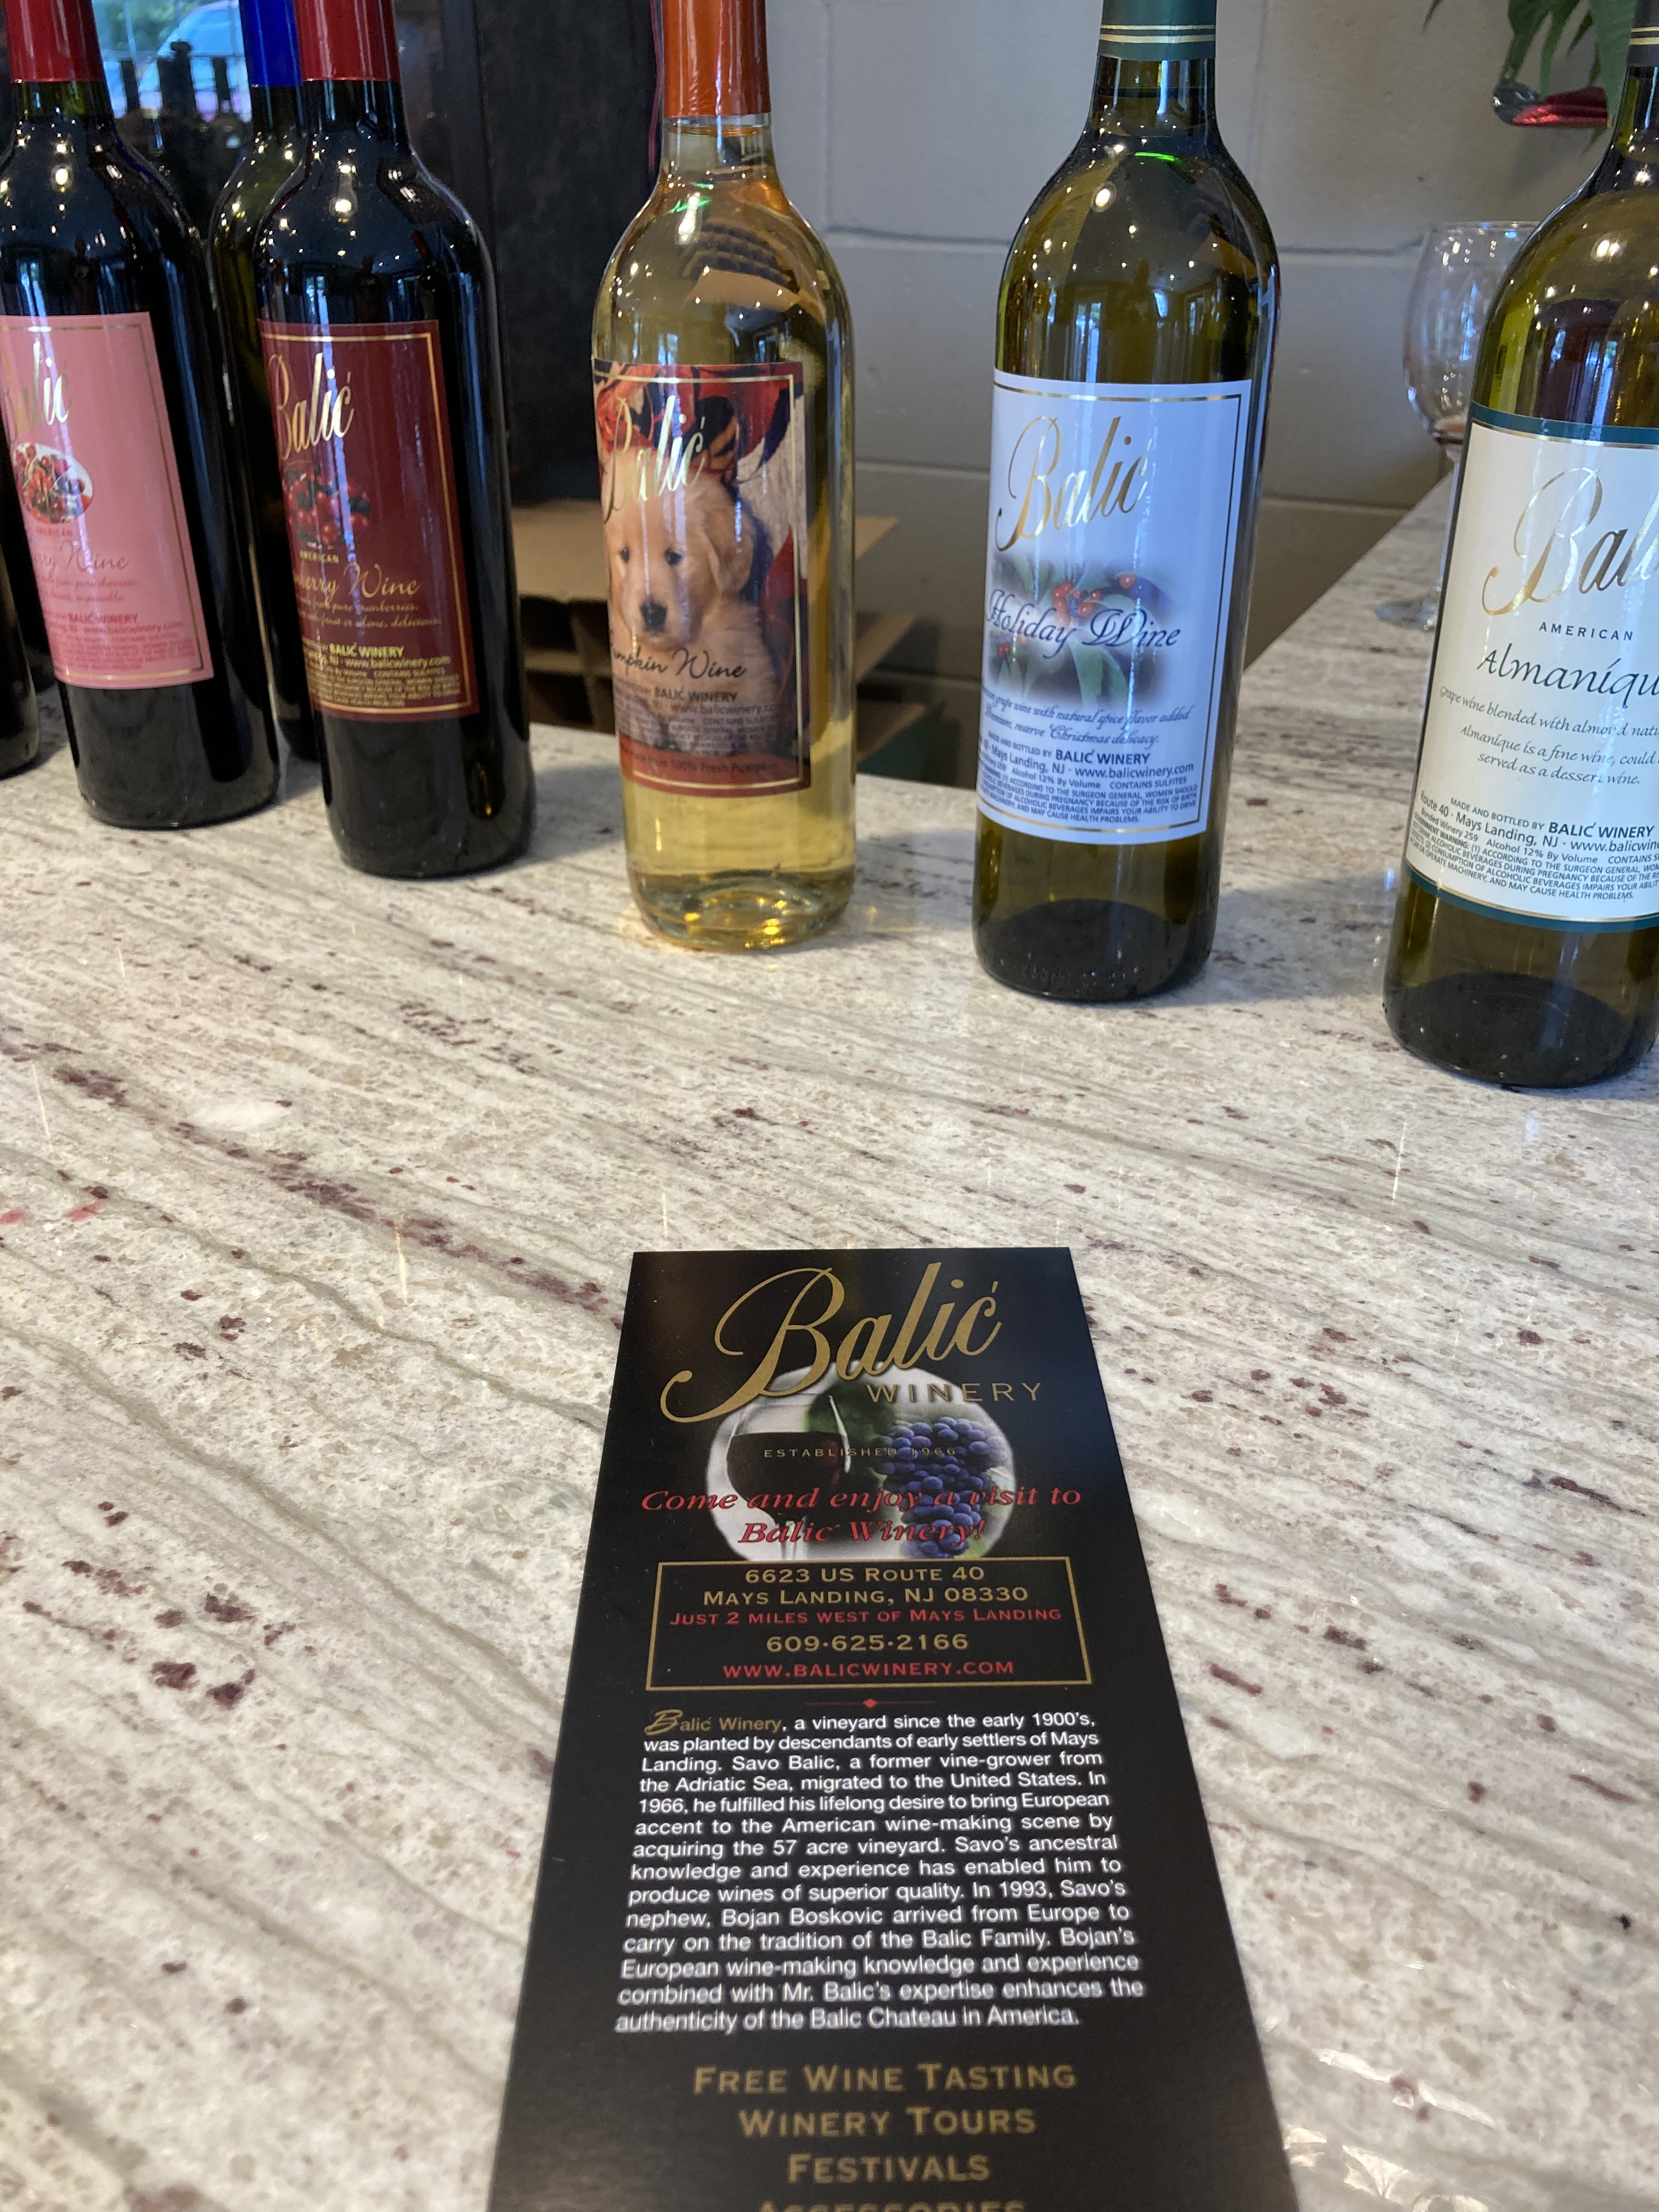 Wine bottles on counter, with small menu in foreground.